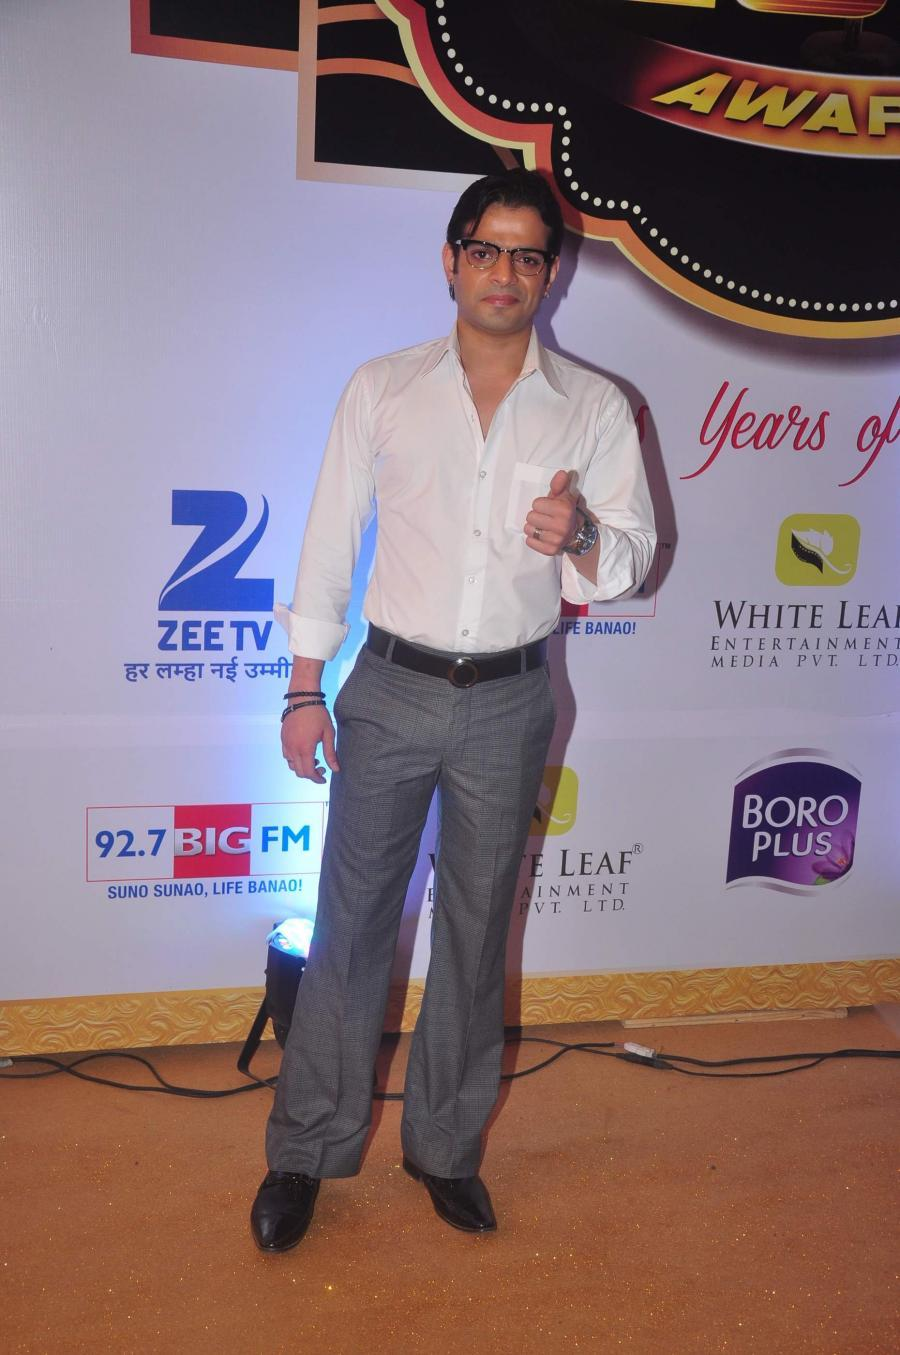 Zee TVs Gold Awards 2015 in Mumbai